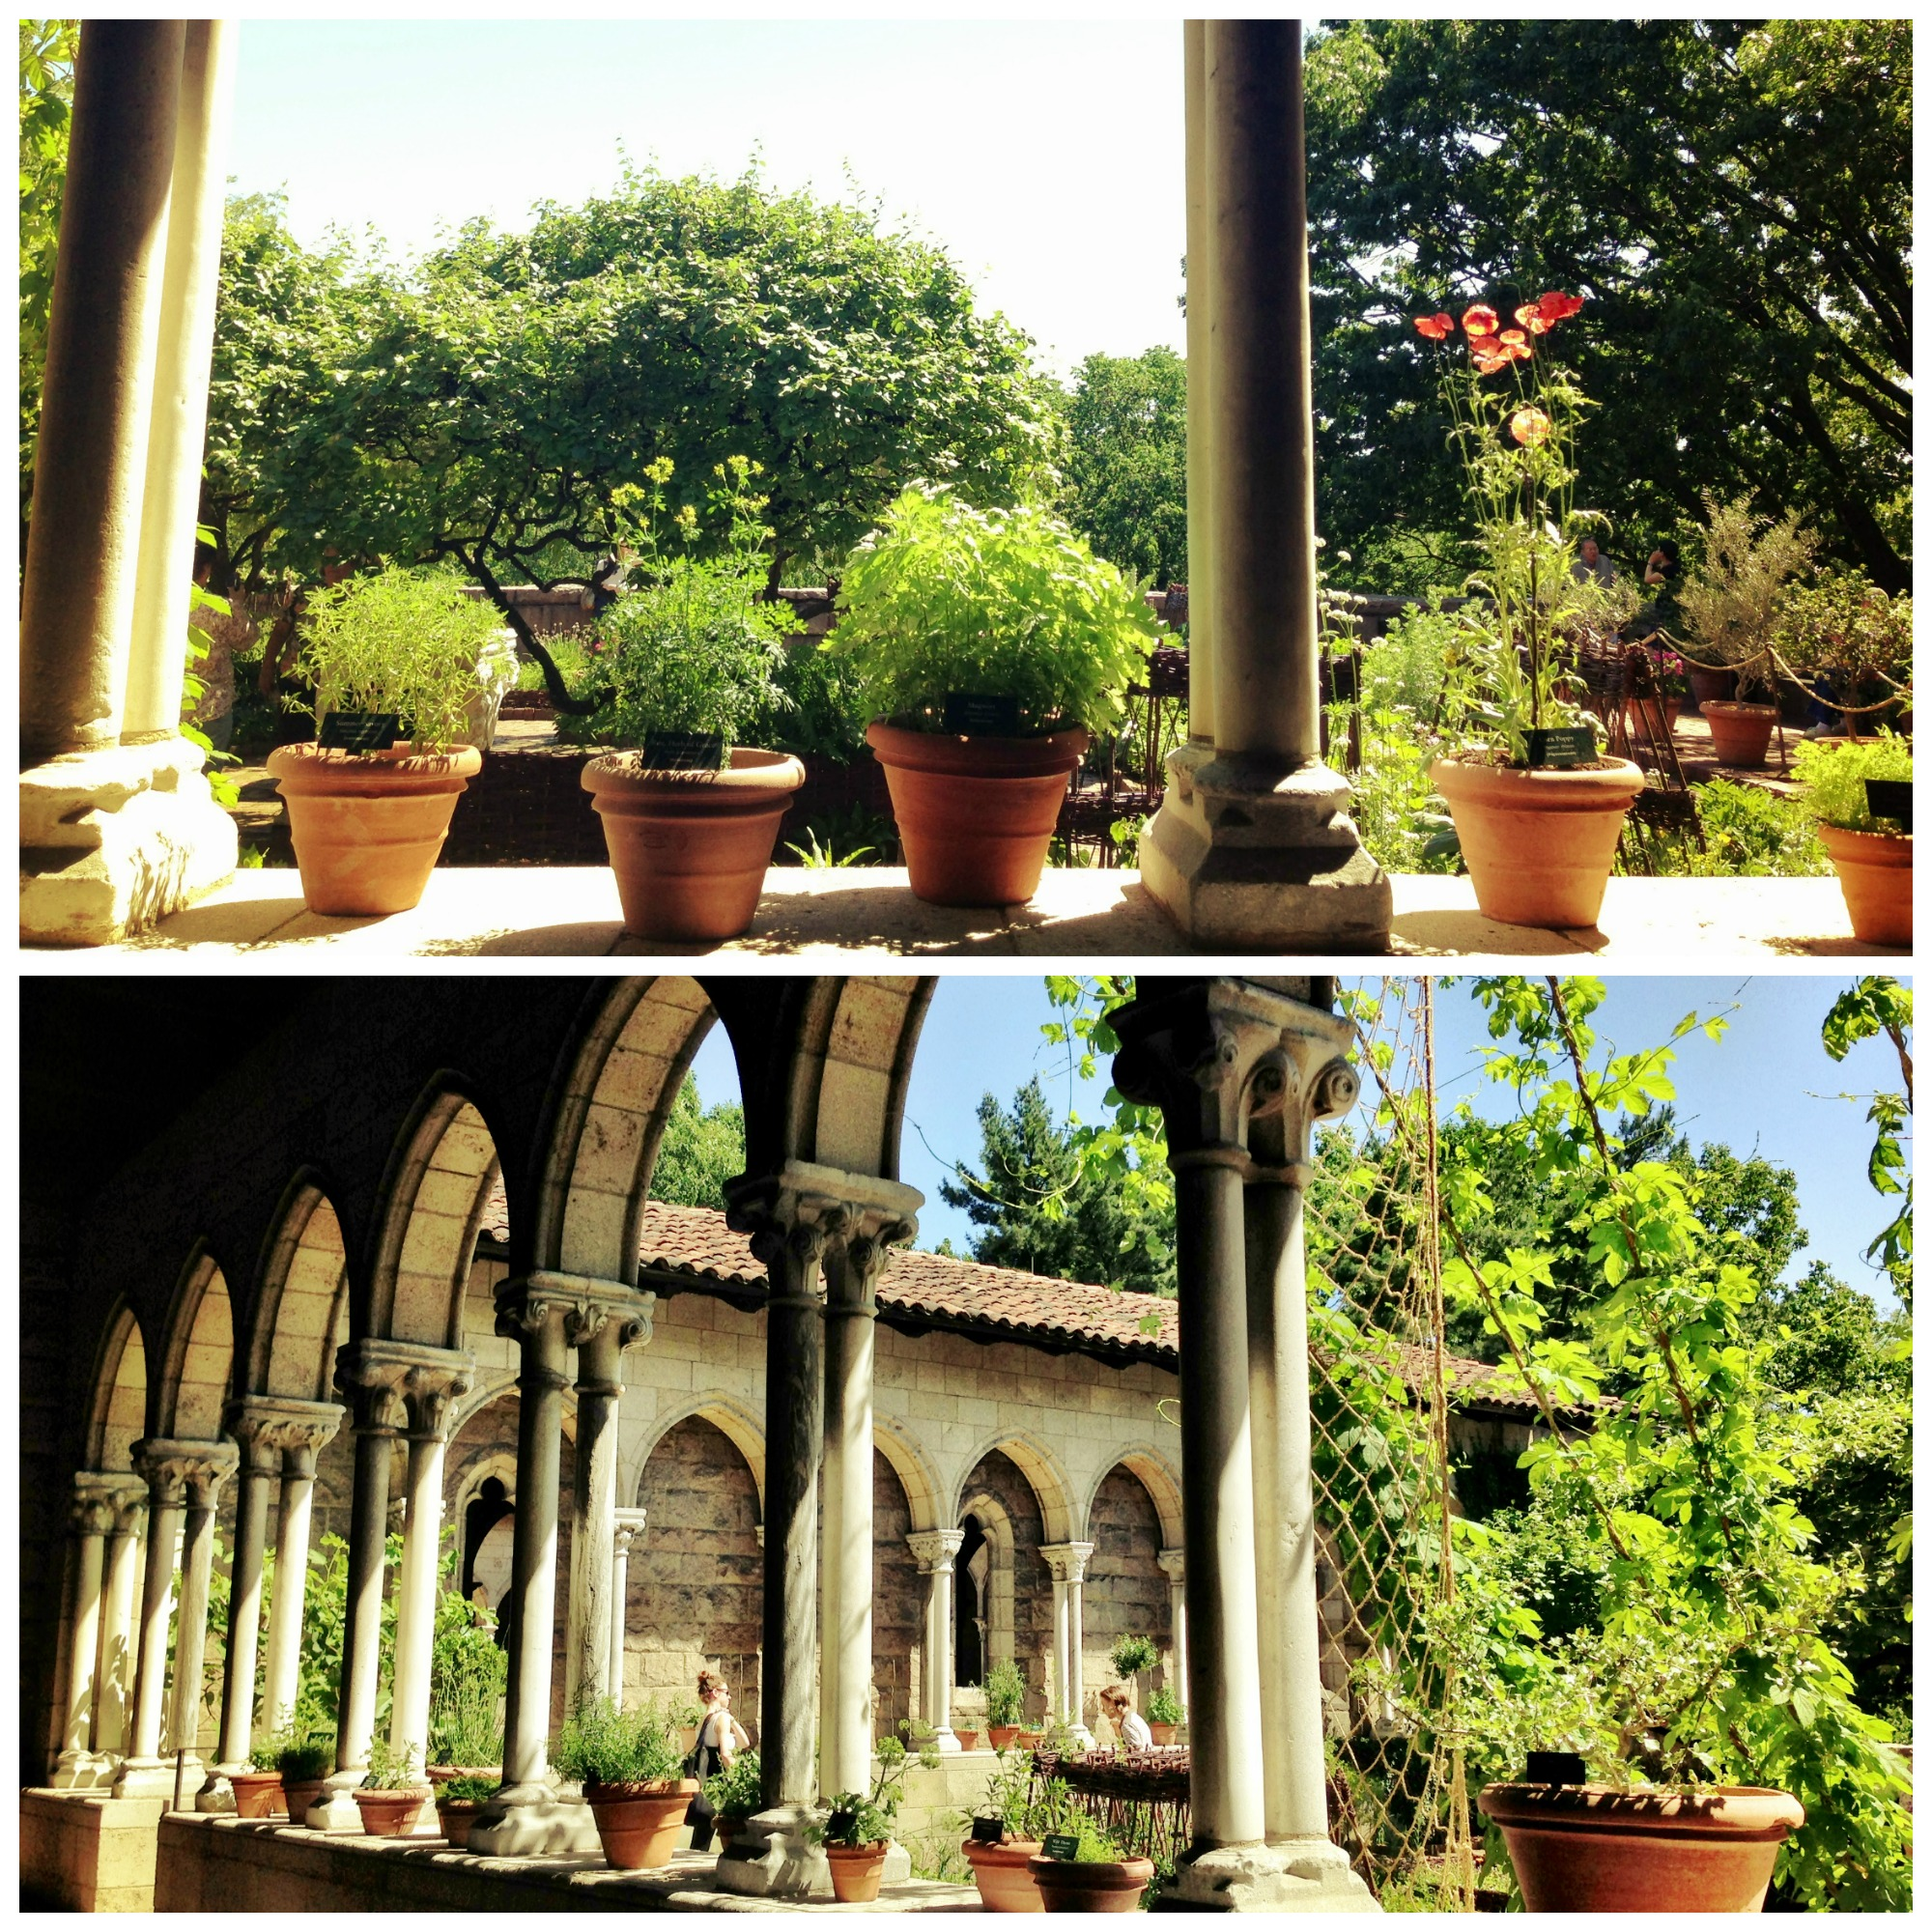 cloisters 6